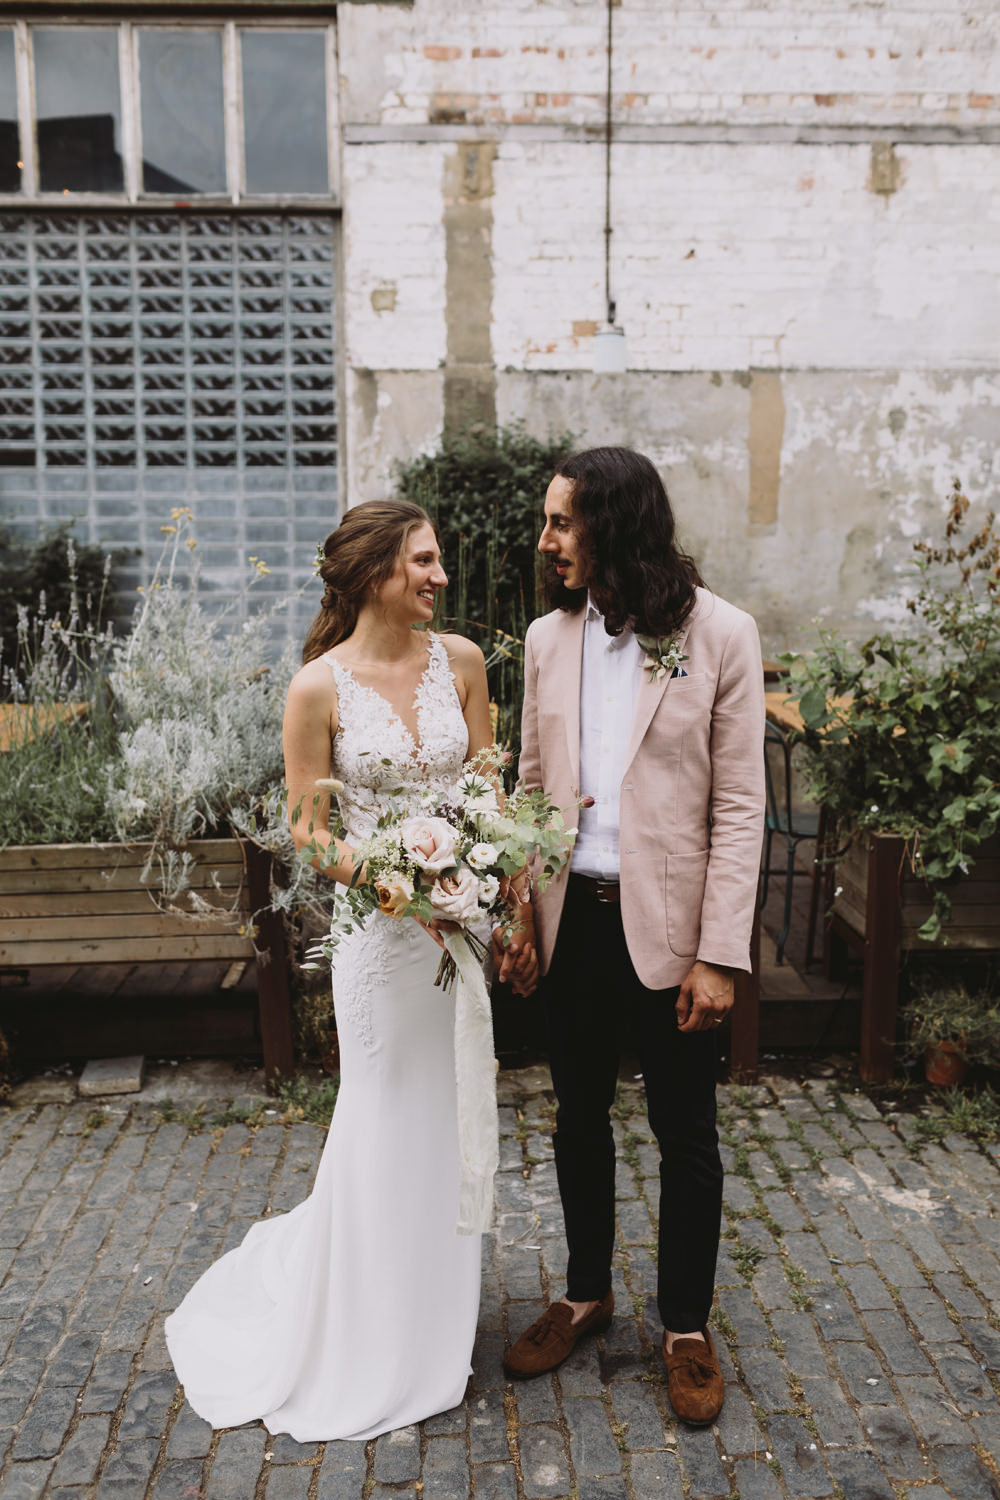 Bride Bridal Sleeveless V Neck Fit and Flare Train Pronovias Dress Gown Pink Jacket Reiss Groom Wild Bouquet Loose Handtied Rose Tram House Wedding Luke Hayden Photography